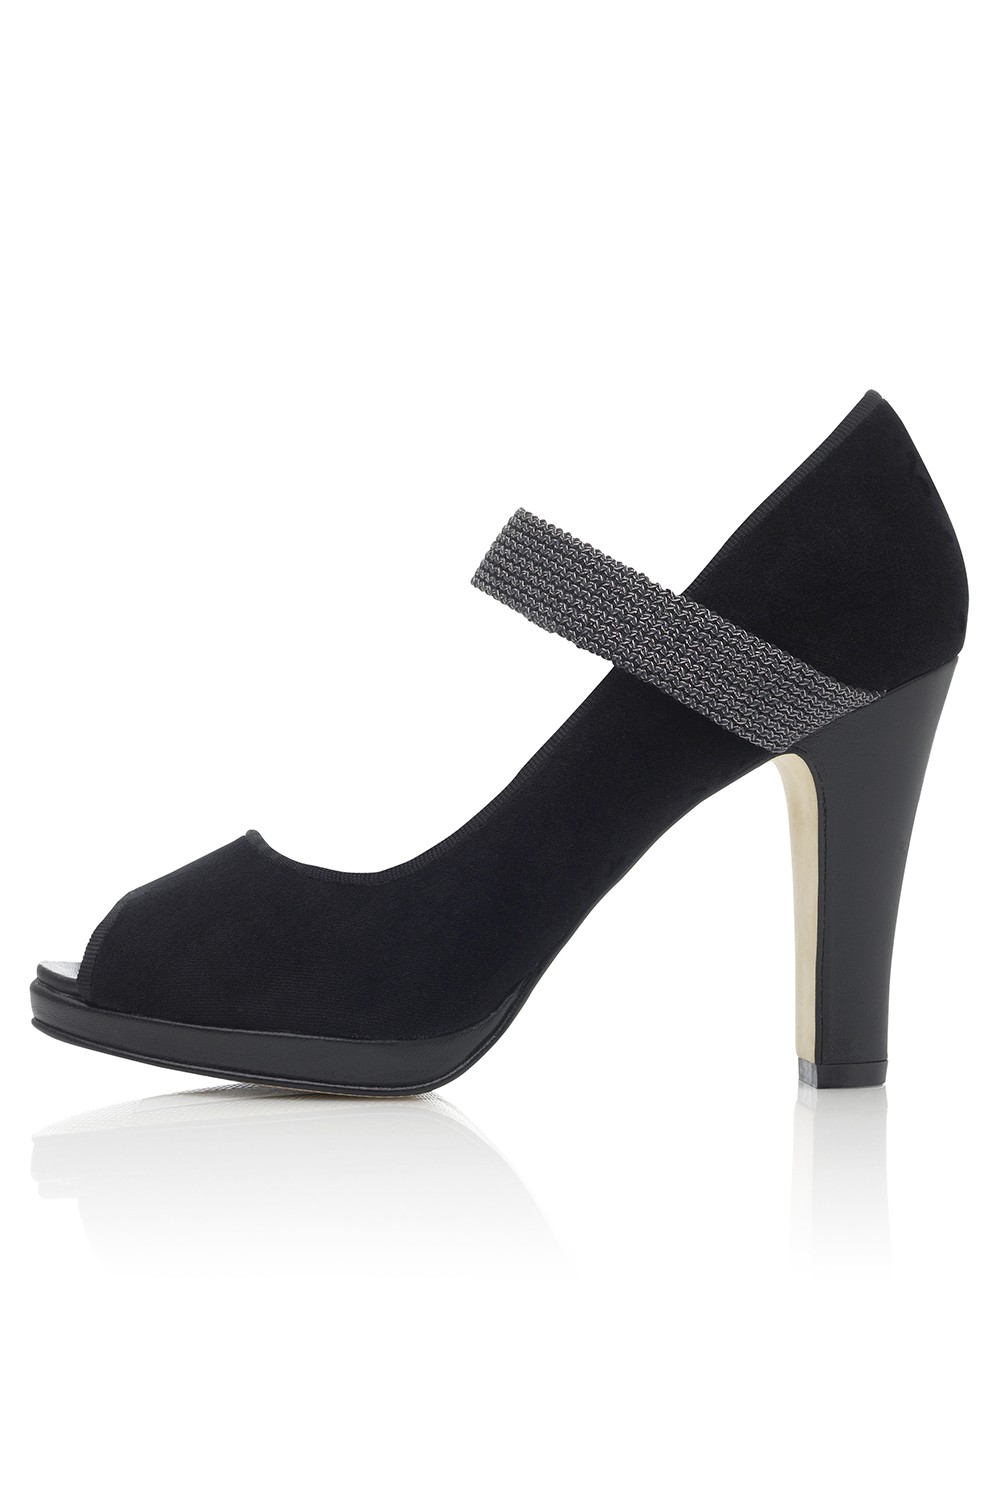 Peeptoe Elastico - Nero Womens Fashion Shoes